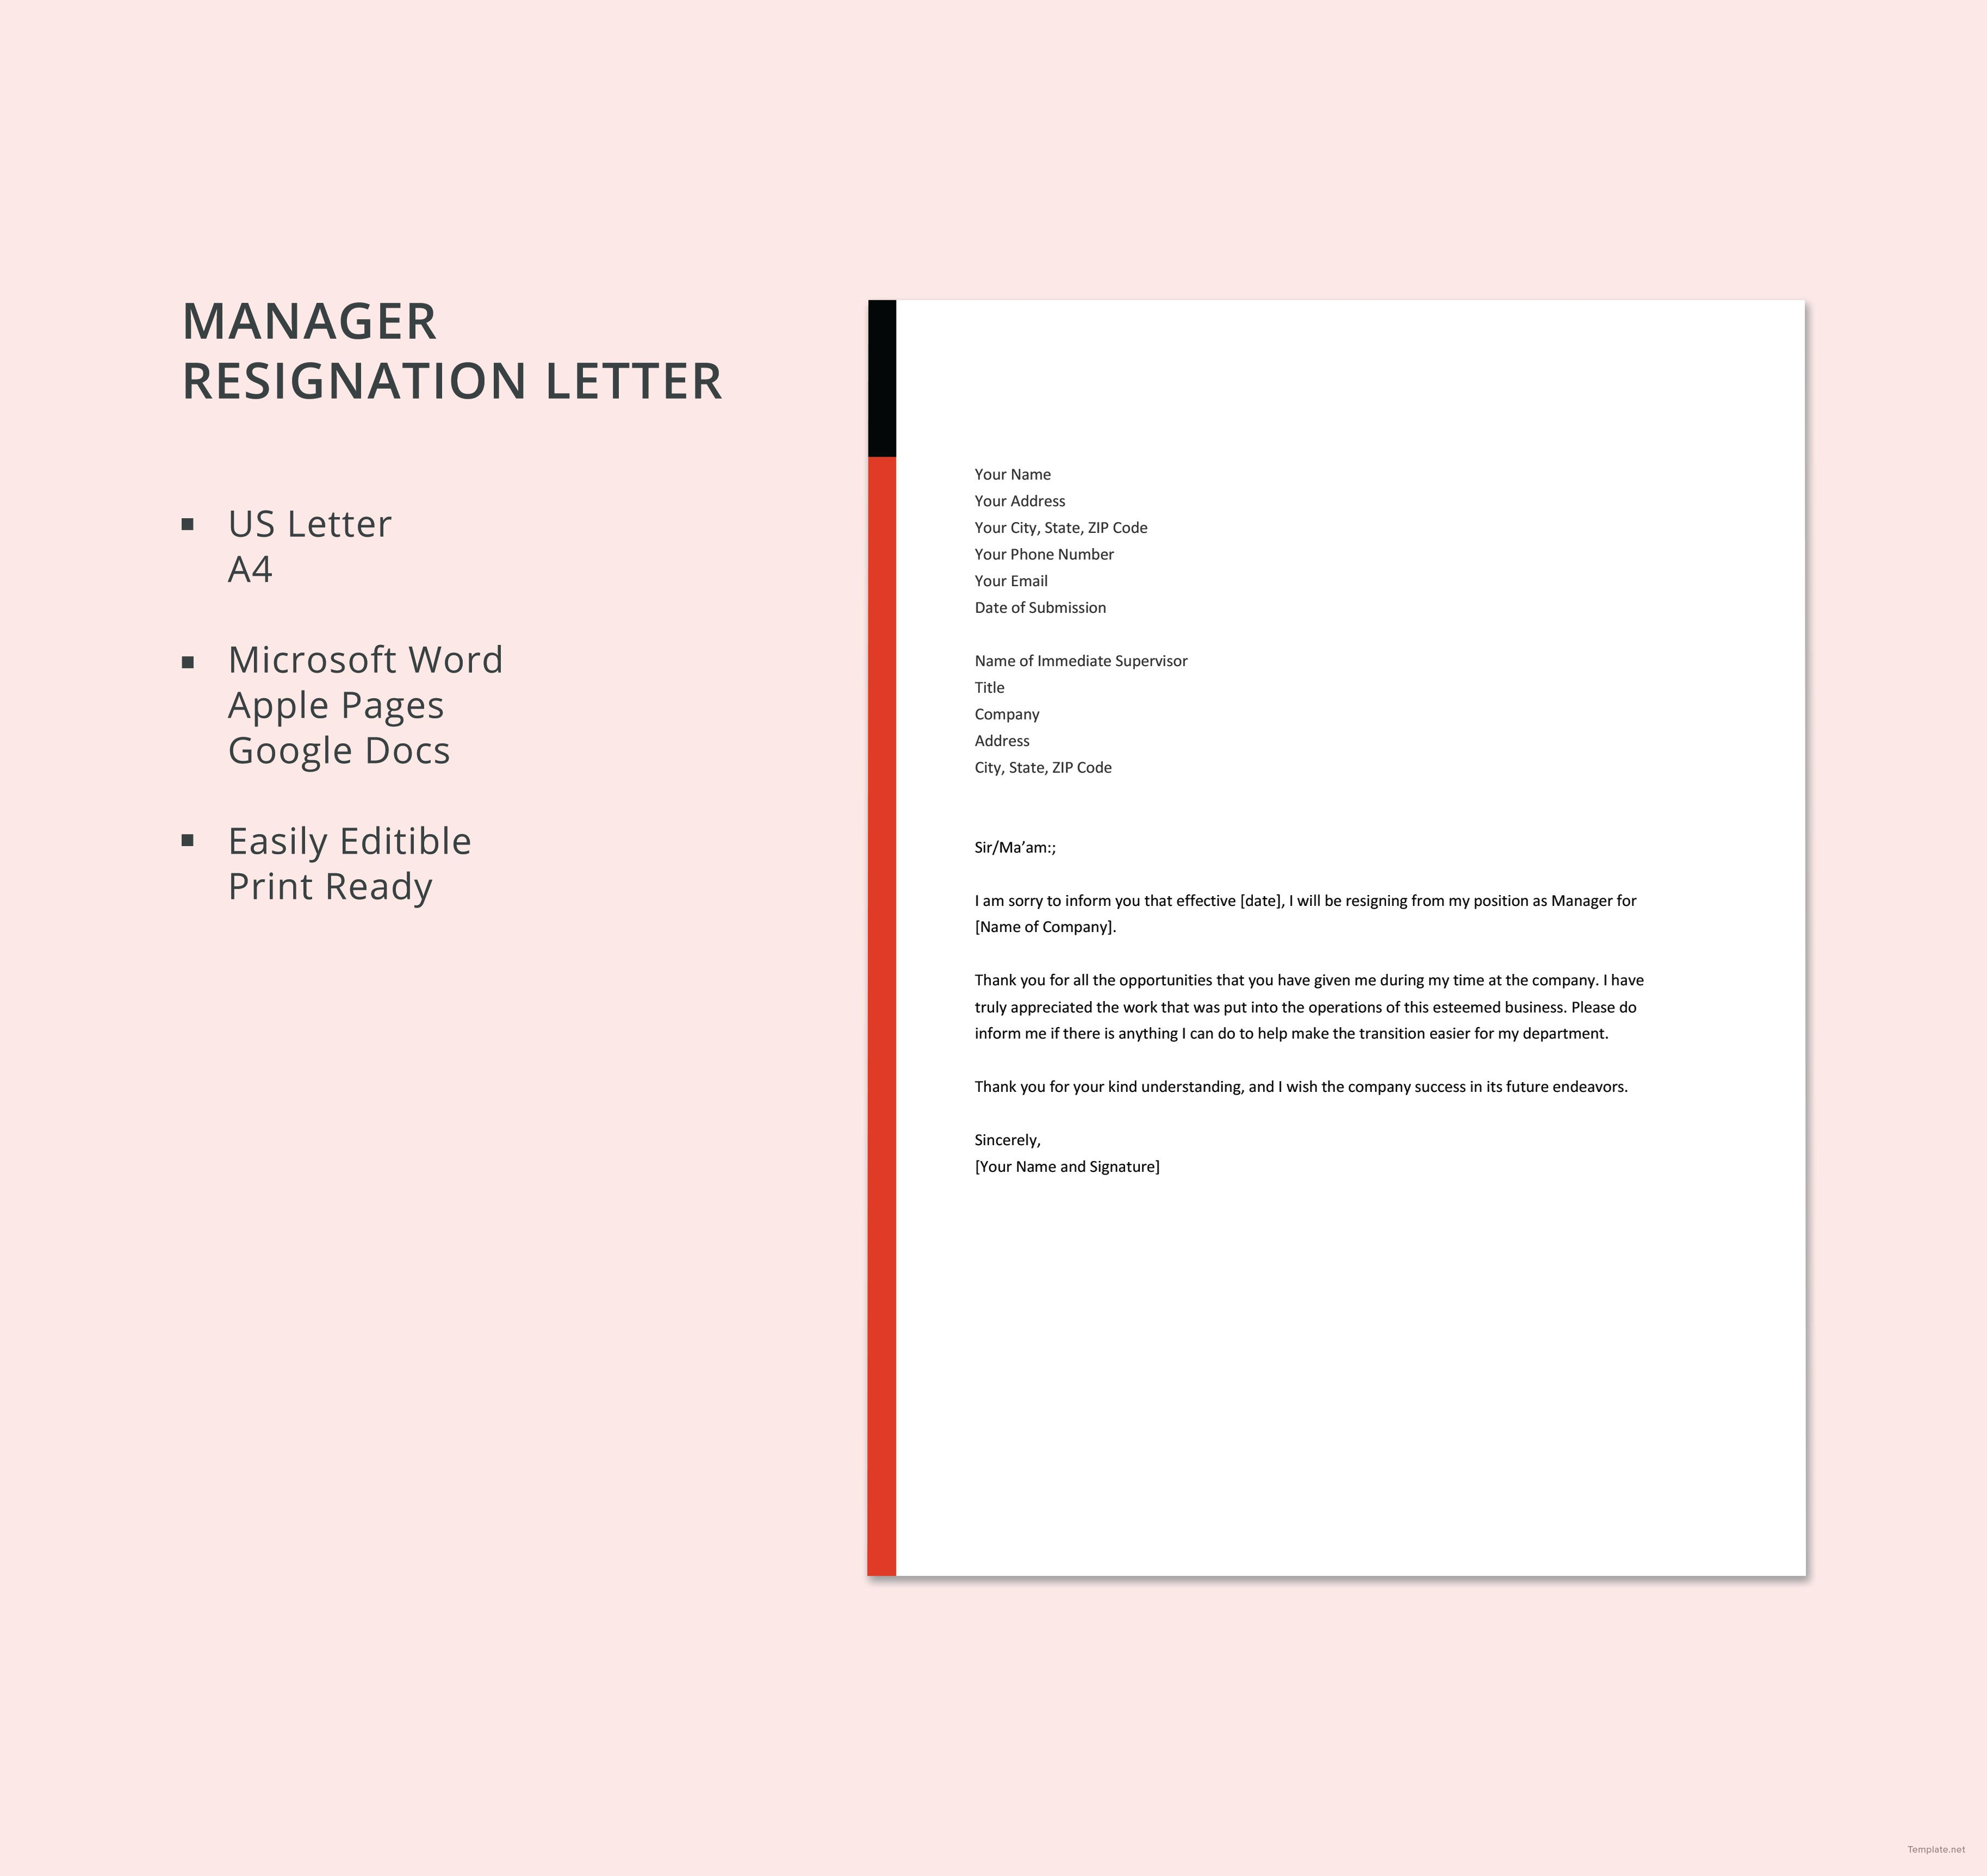 Manager Resignation Letter Template Free Pdf Word Doc Apple Mac Pages Google Docs Official Letter Format Resignation Letter Lettering Microsoft word resignation letter template